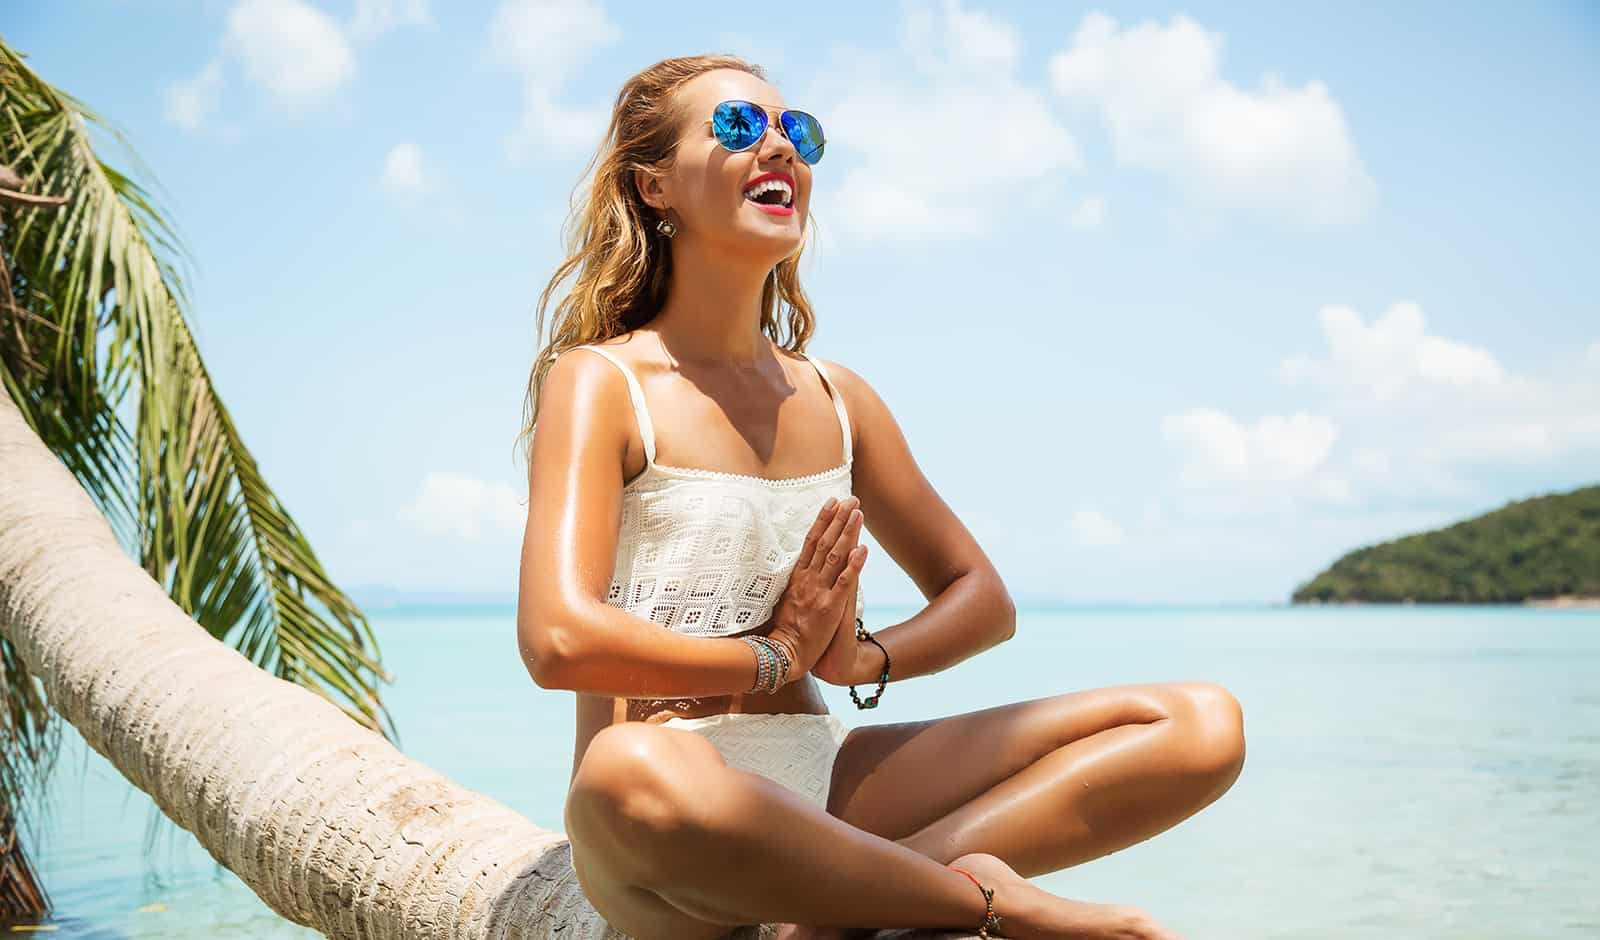 New-Vegan-Products-for-Women-to-Look-Forward-to-this-Summer-main-image